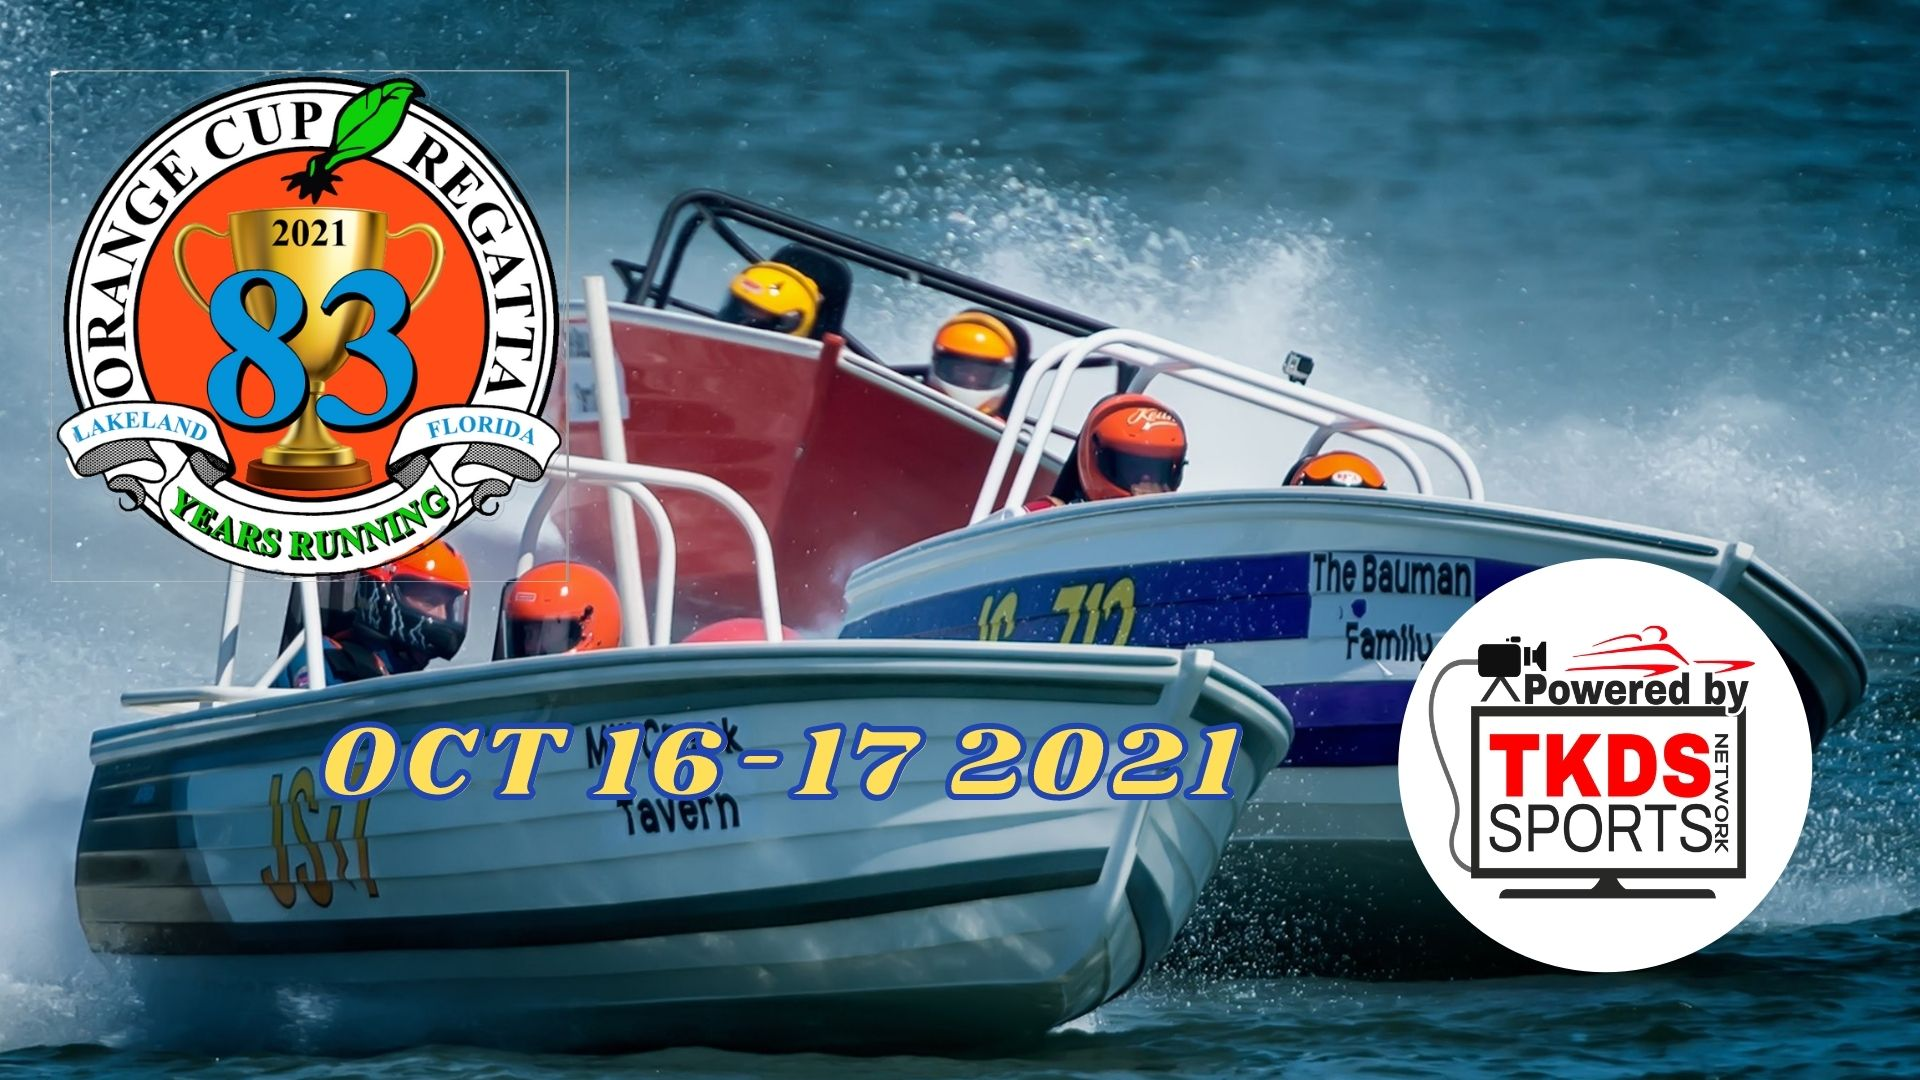 Read more about the article TKDS Sports To Bring The 2021 Boat Races Broadcast Live From Lakeland Florida The Orange Cup Regatta OCT 16th and 17th